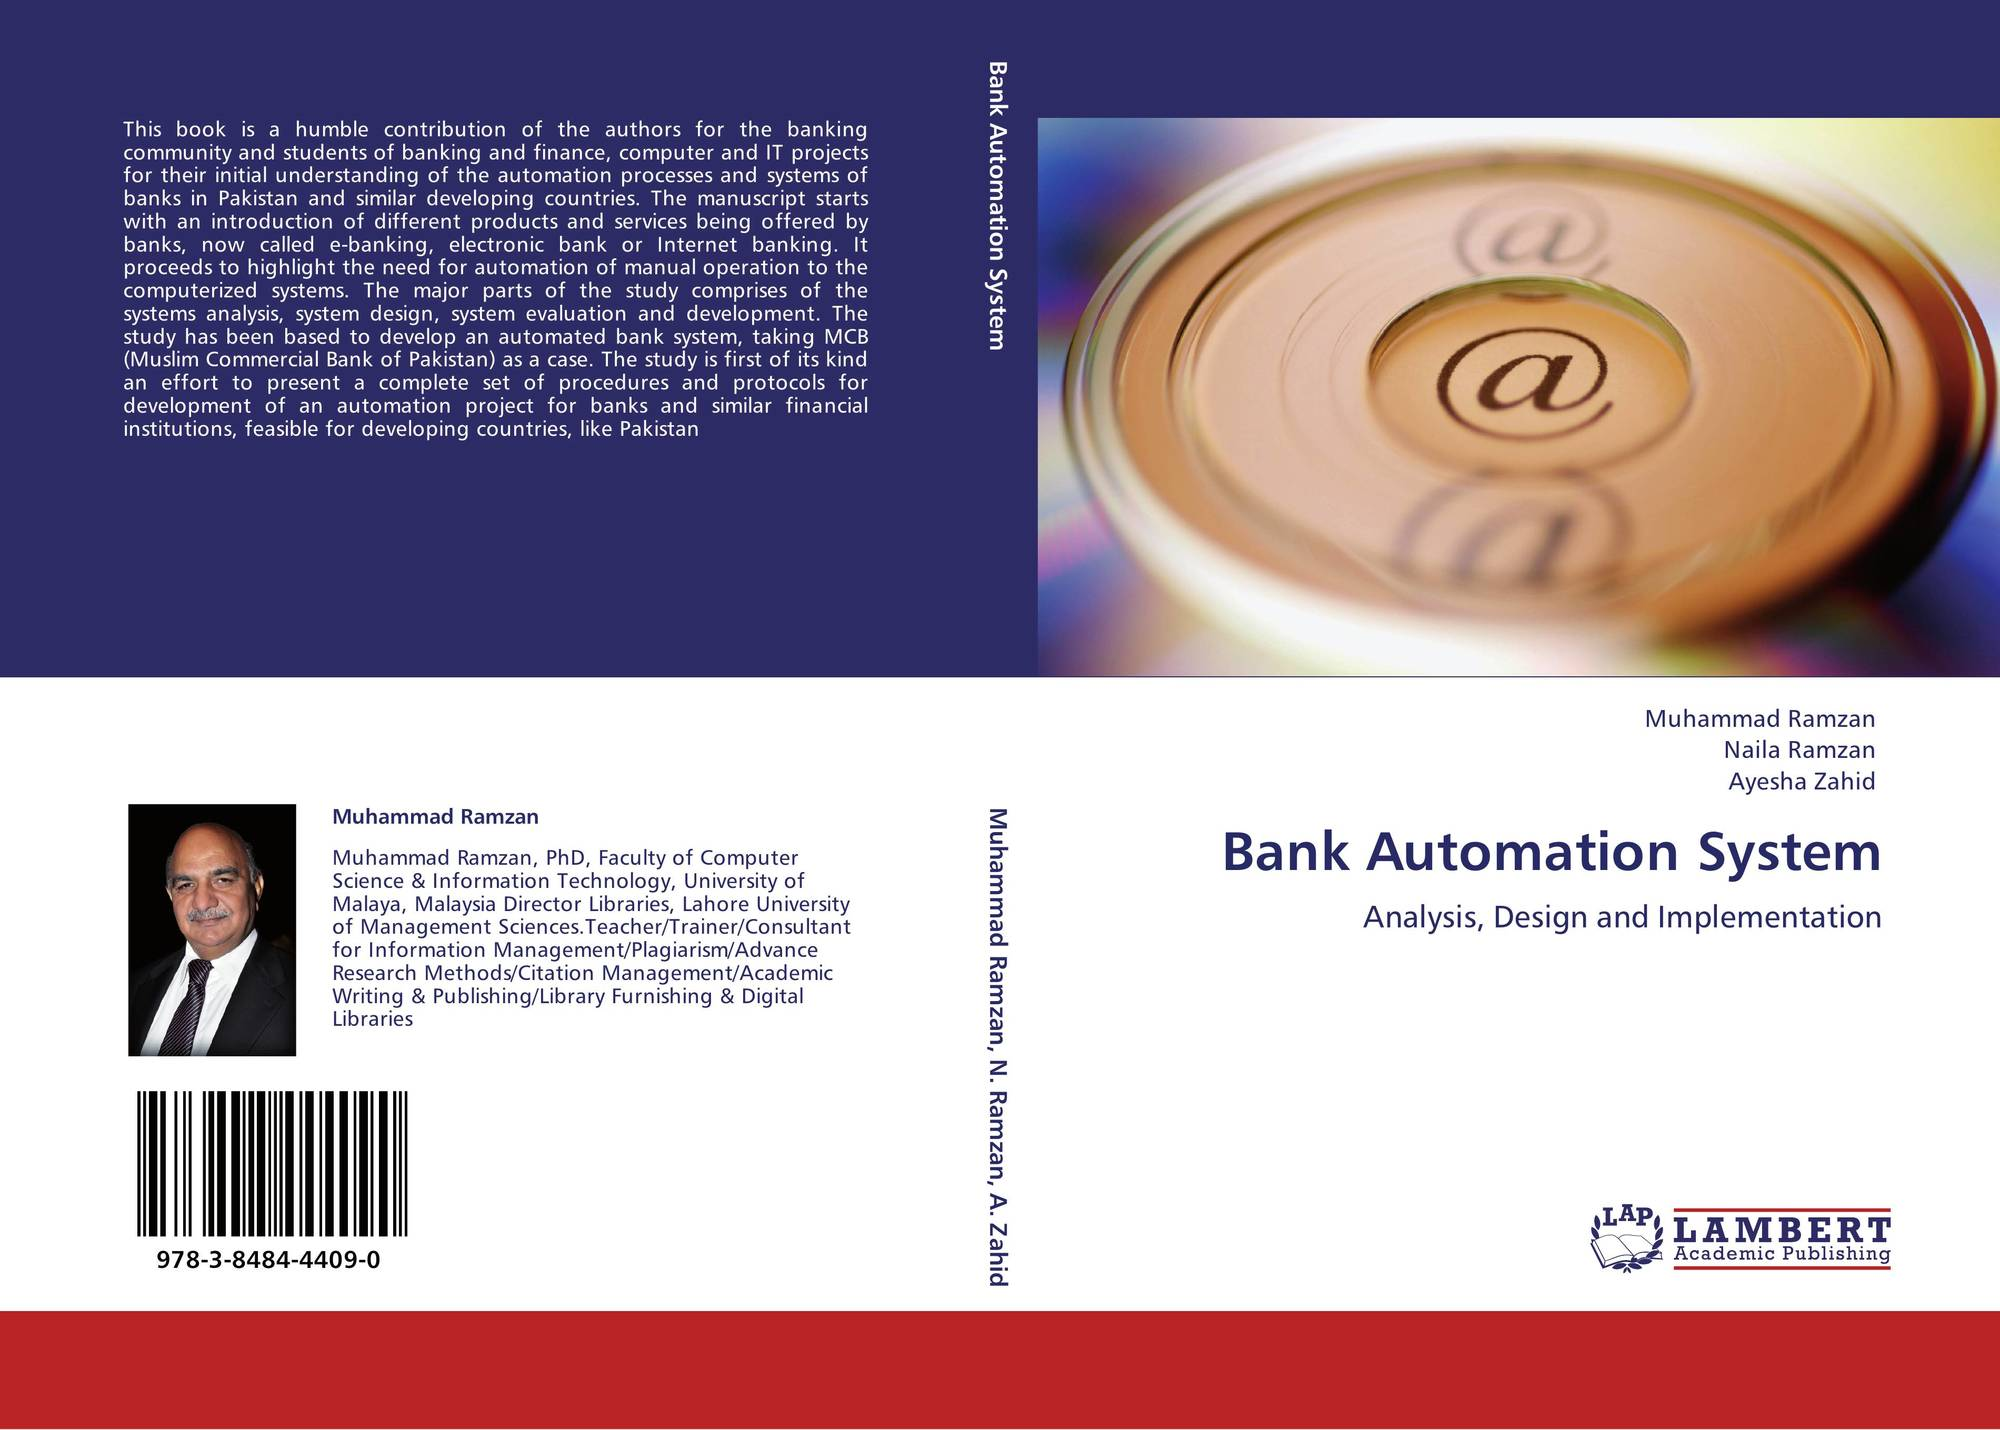 bank automation system Bank automation system: analysis, design and implementation [muhammad ramzan, naila ramzan, ayesha zahid] on amazoncom free shipping on qualifying offers this book is a humble.